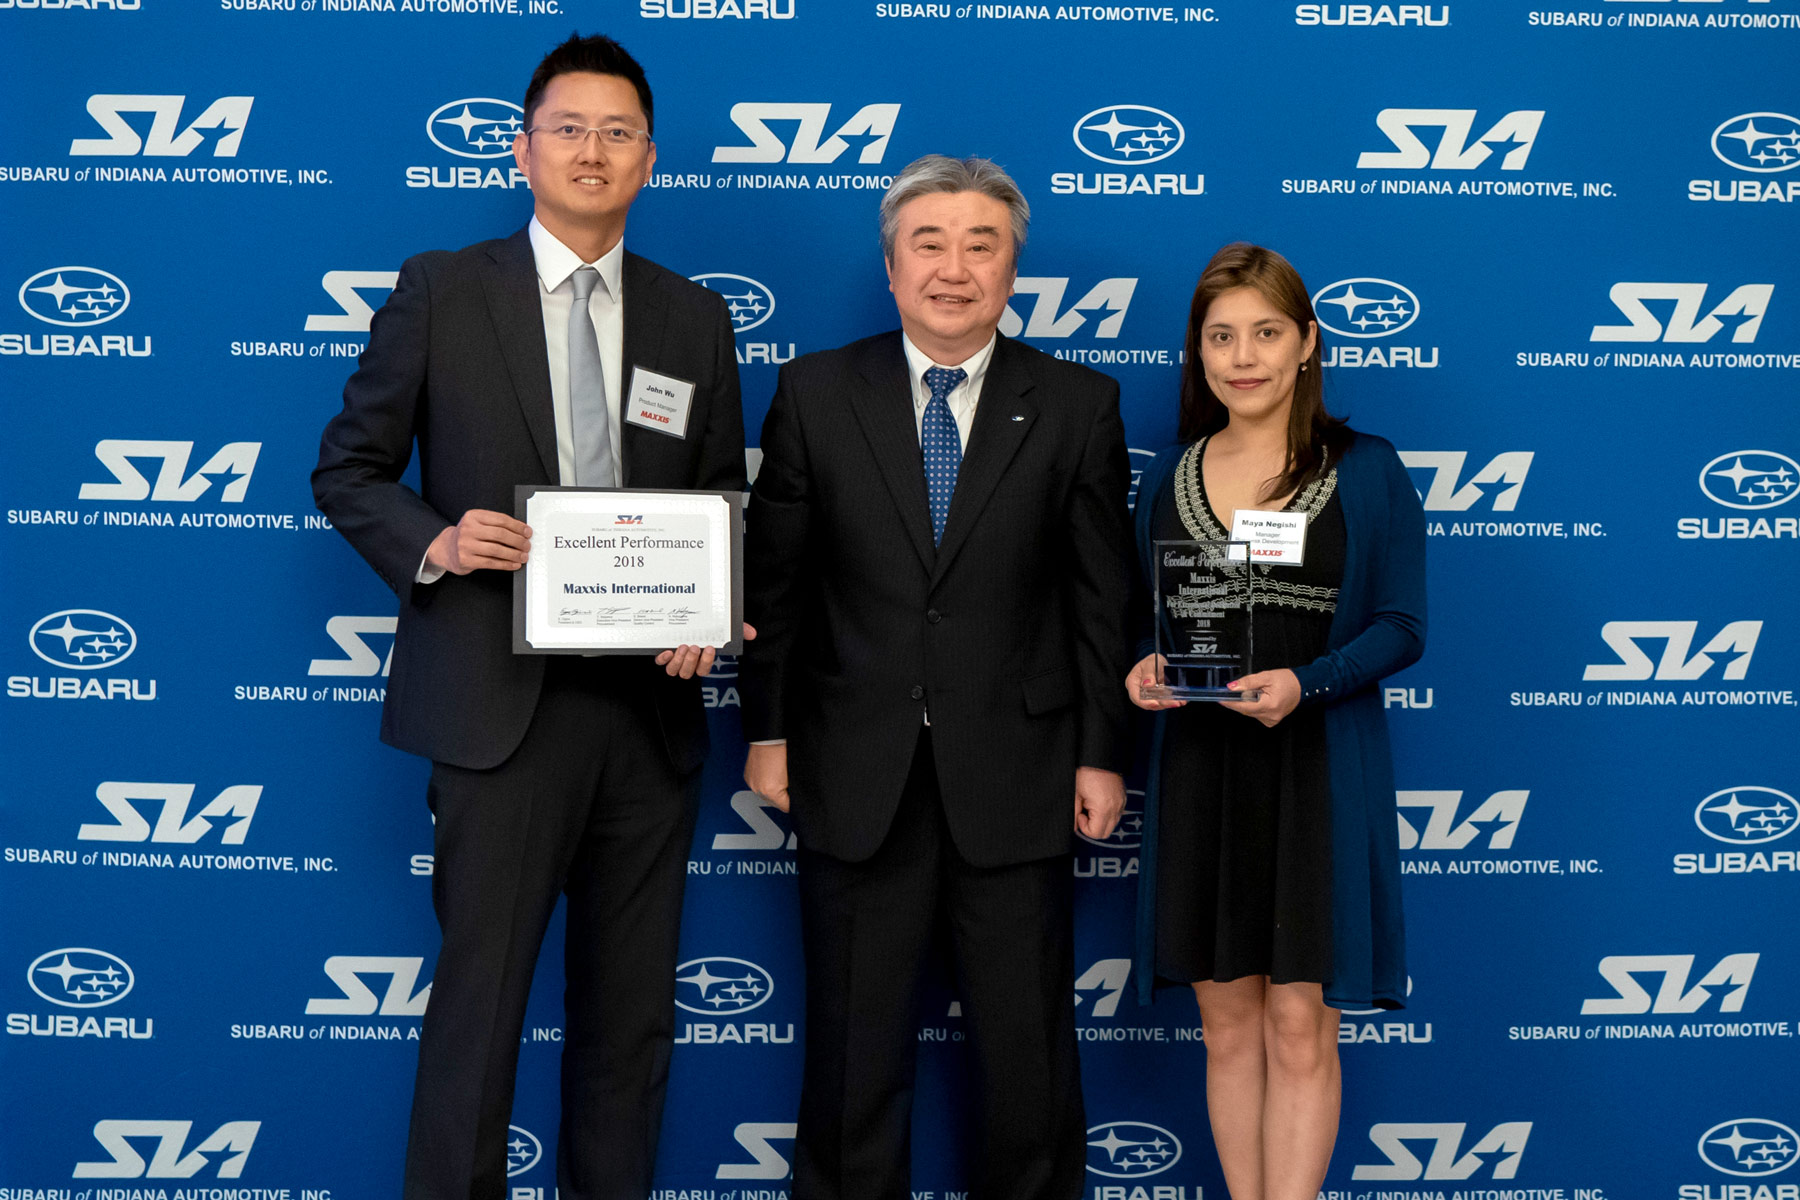 Award Photo (L-R): John Wu (Maxxis International, Product Manager), Eiji Ogino (Subaru of Indiana Automotive, Inc. (SIA), President and CEO), Maya Negishi (Maxxis International, Business Development Manager).